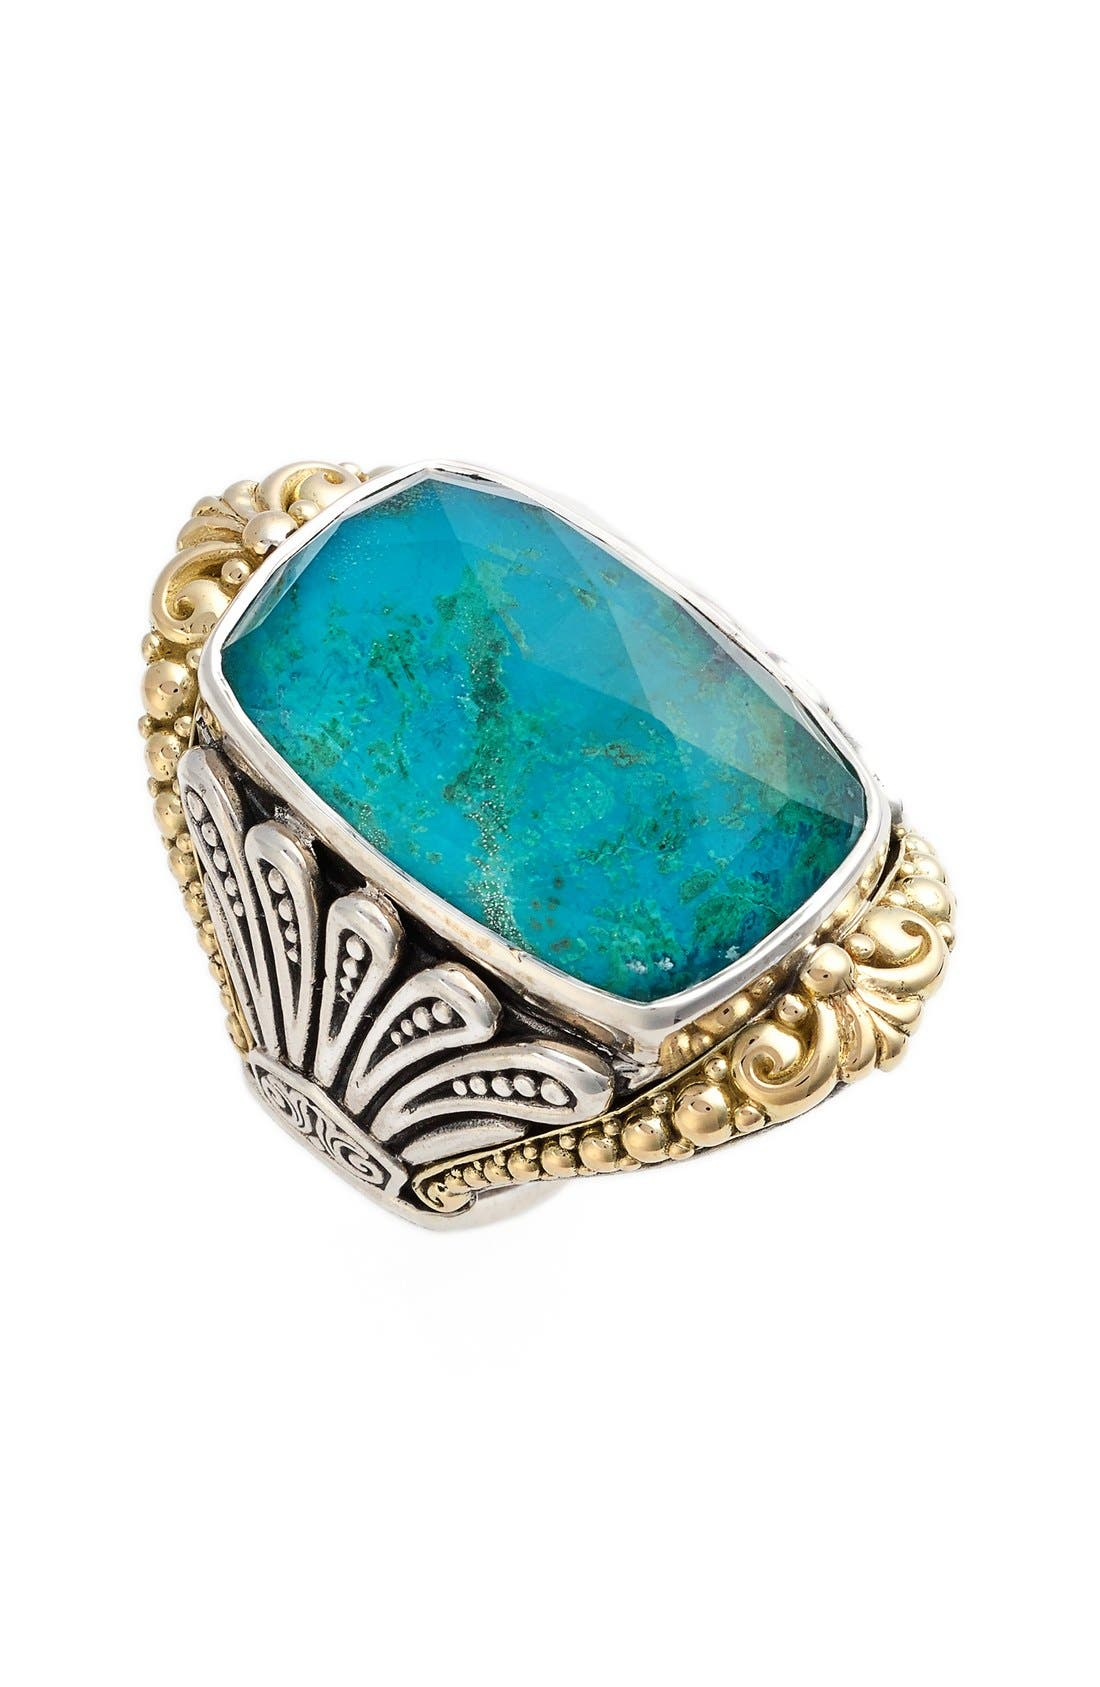 'Iliada' Large Doublet Ring,                             Main thumbnail 1, color,                             Blue/ Green